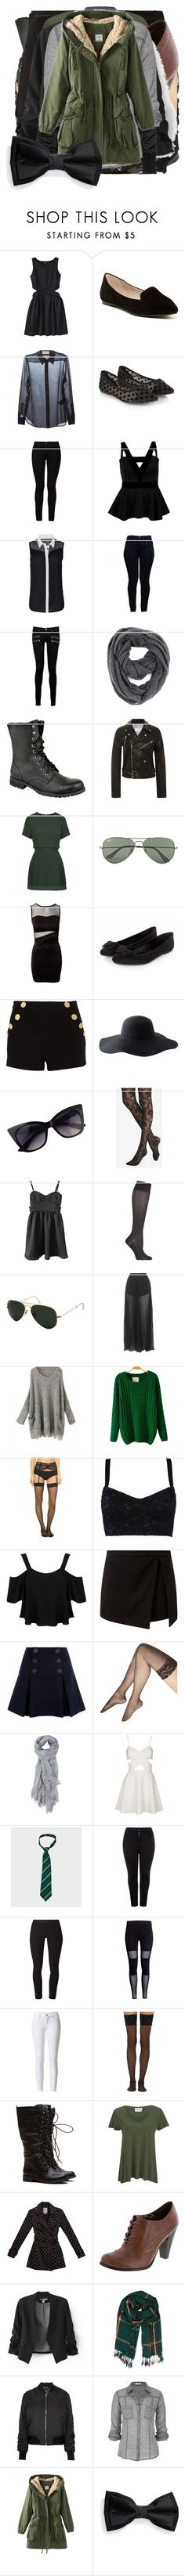 """Rose Potter"" by demiwitch-of-mischief ❤ liked on Polyvore featuring labworks, ALDO, Yves Saint Laurent, Accessorize, Barbara I Gongini, Boohoo, Armani Jeans, Paige Denim, Paula Bianco and Band of Outsiders"